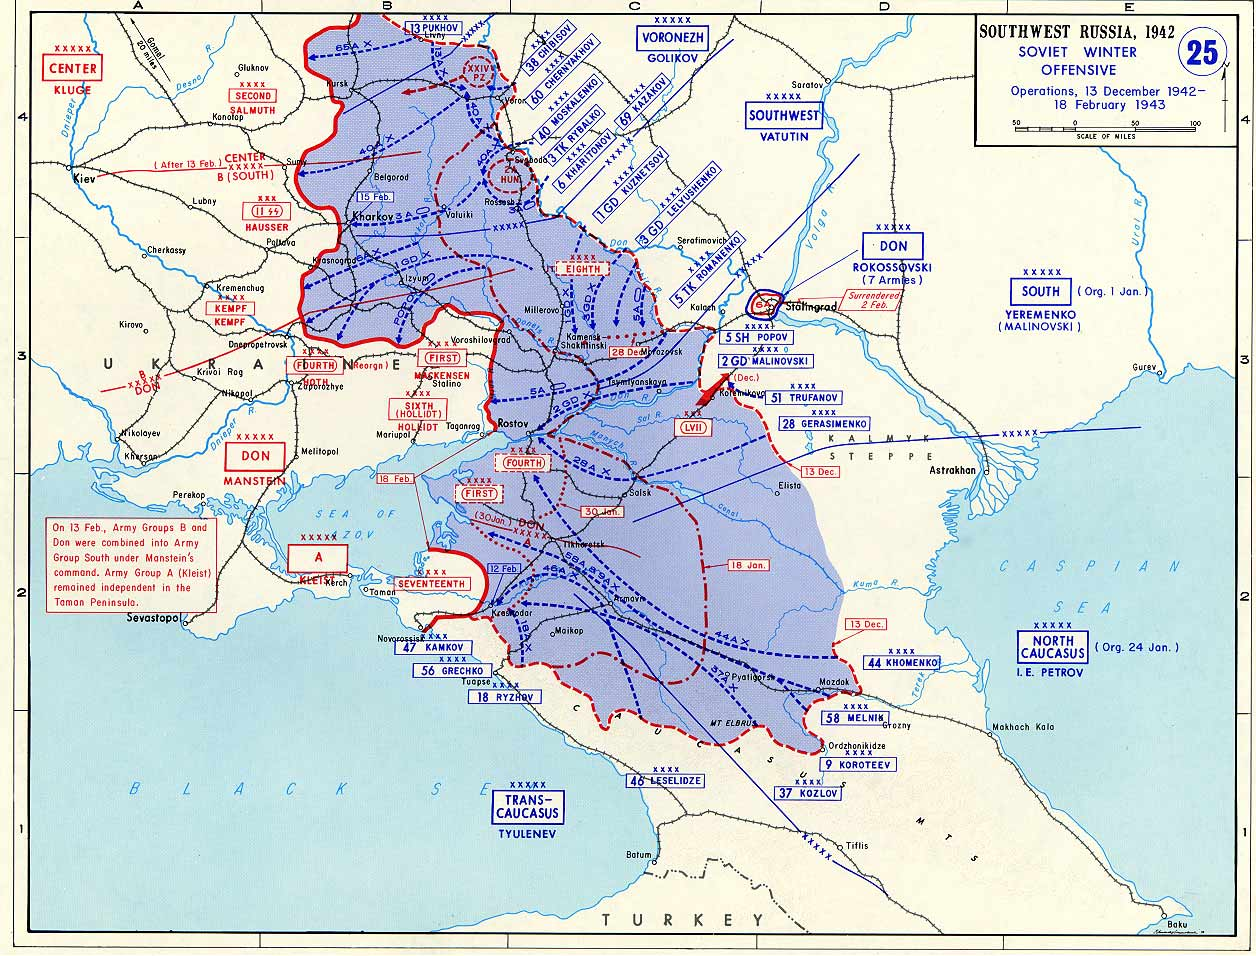 Map Of Germany 1942.Map Of Second Soviet Winter Offensive Against Germany December 1942